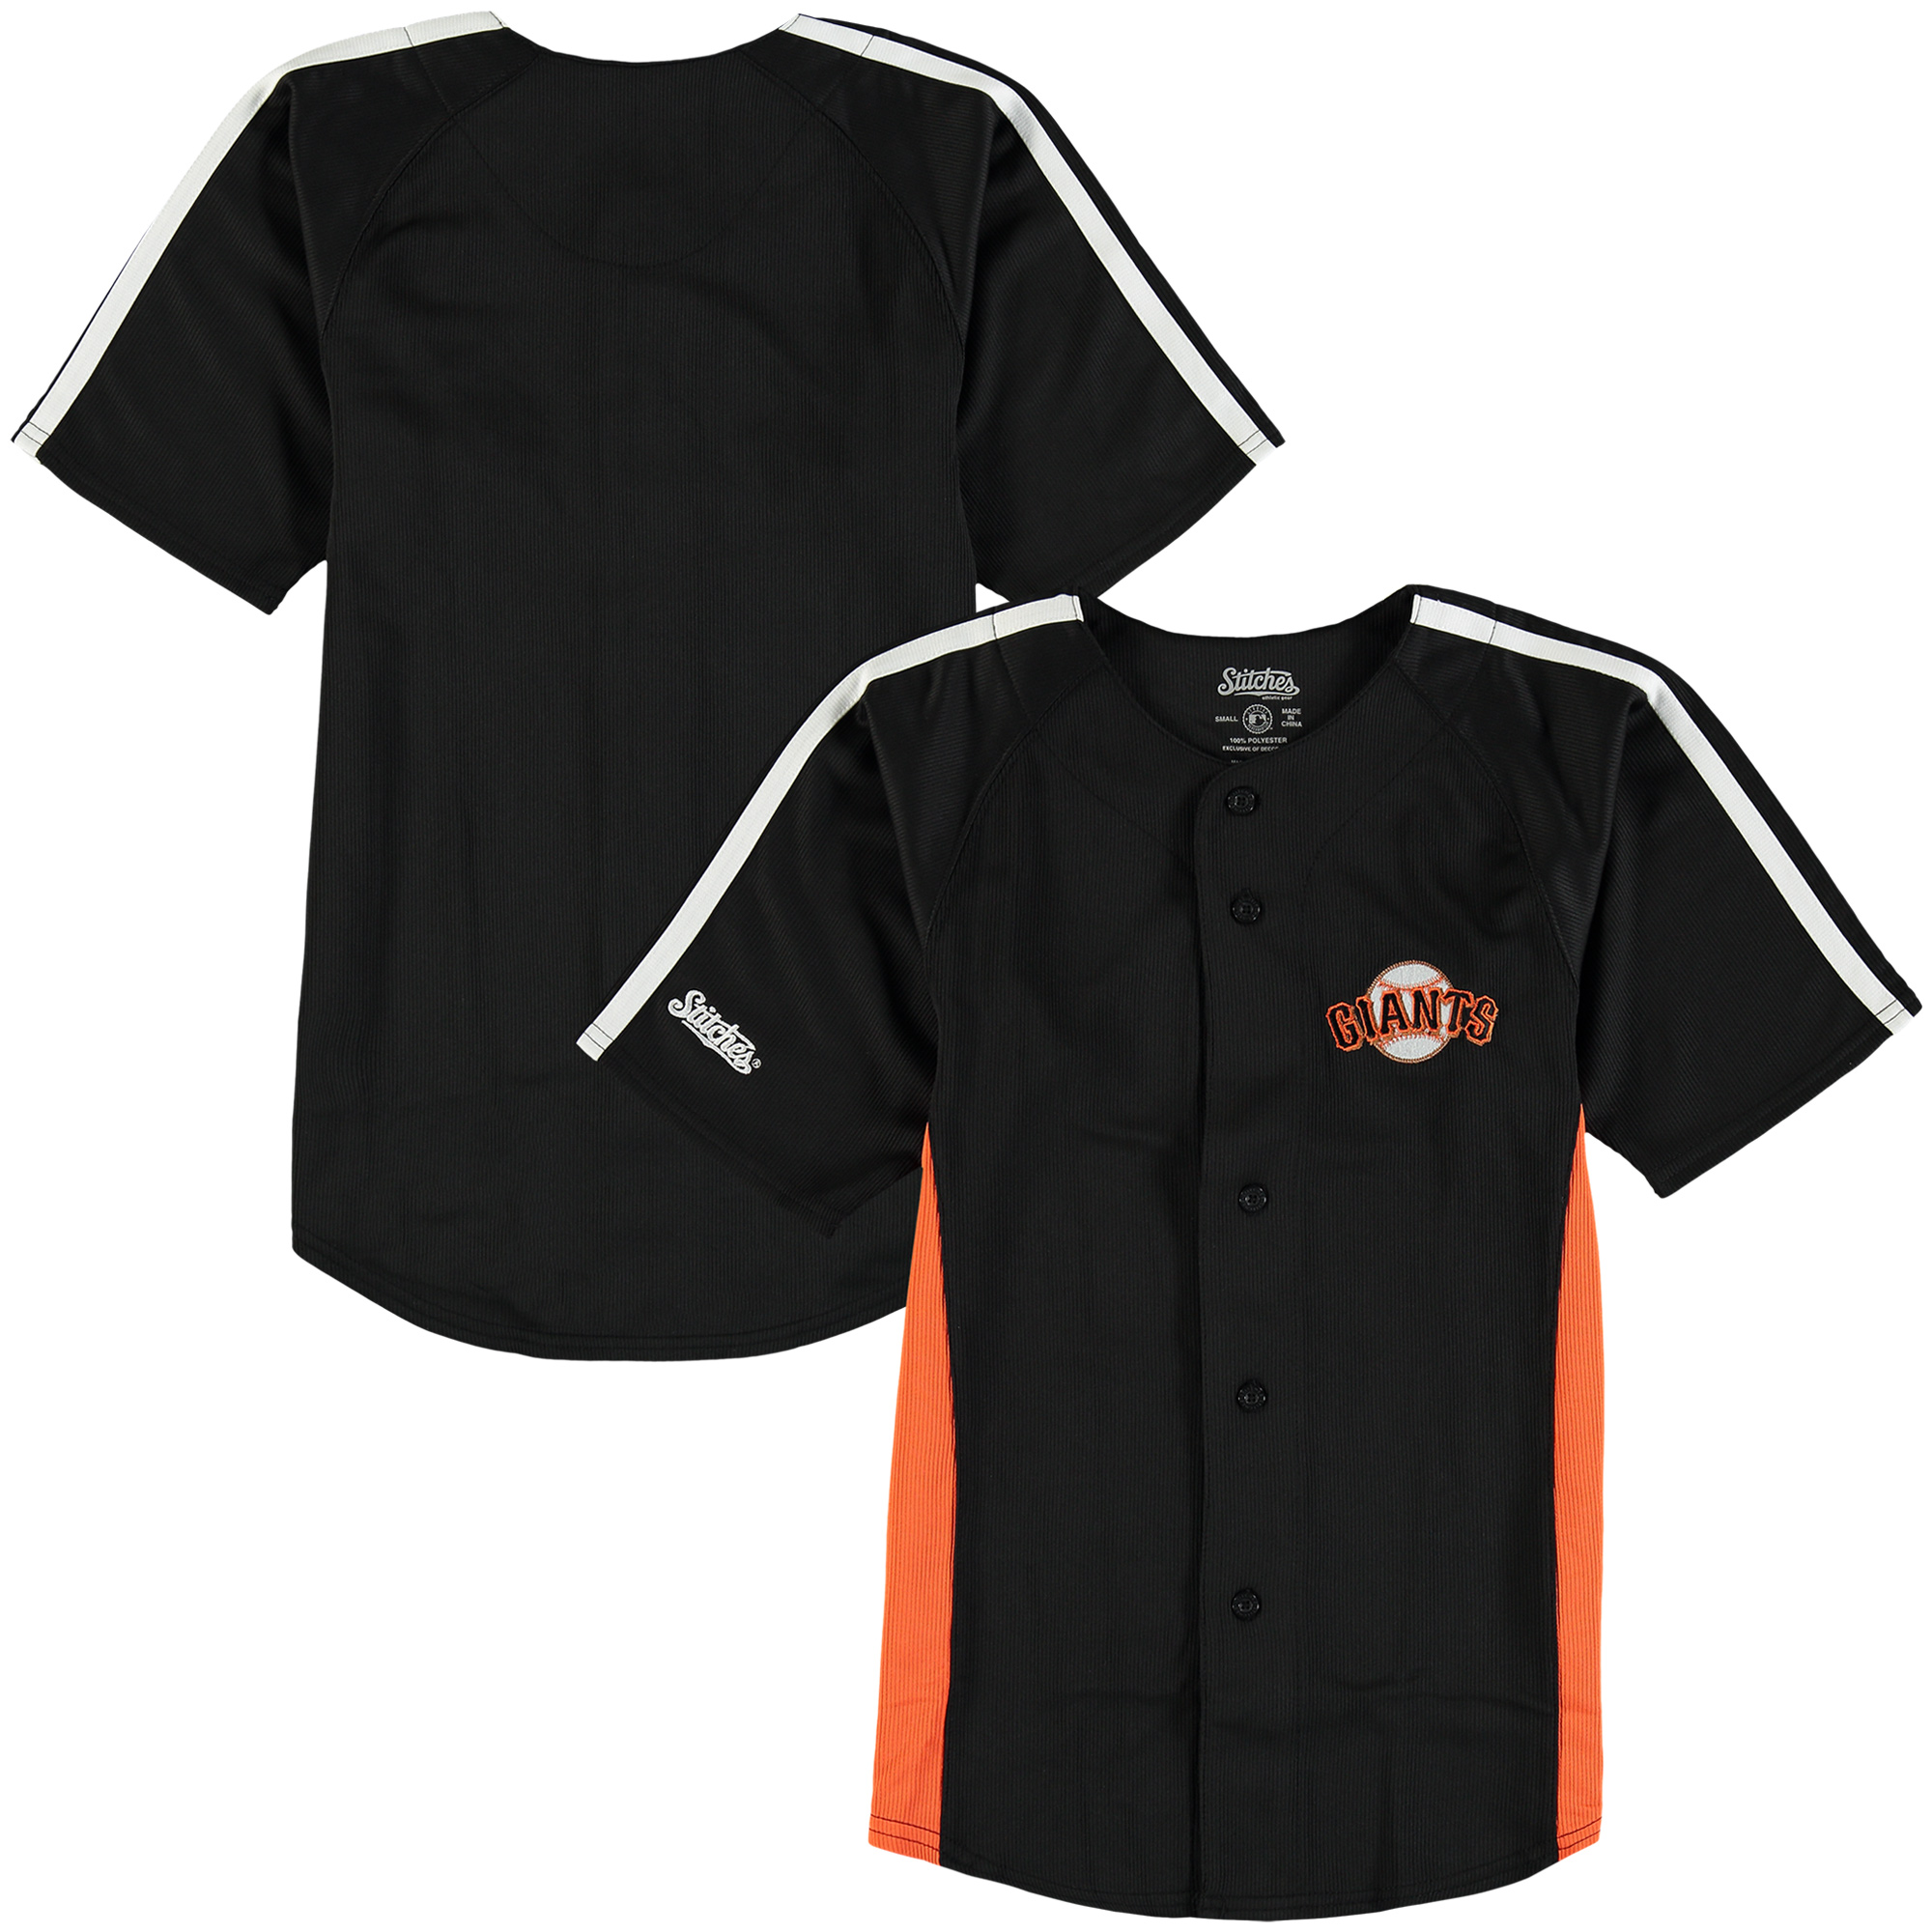 San Francisco Giants Stitches Youth Chin Music Fashion Button Jersey - Black